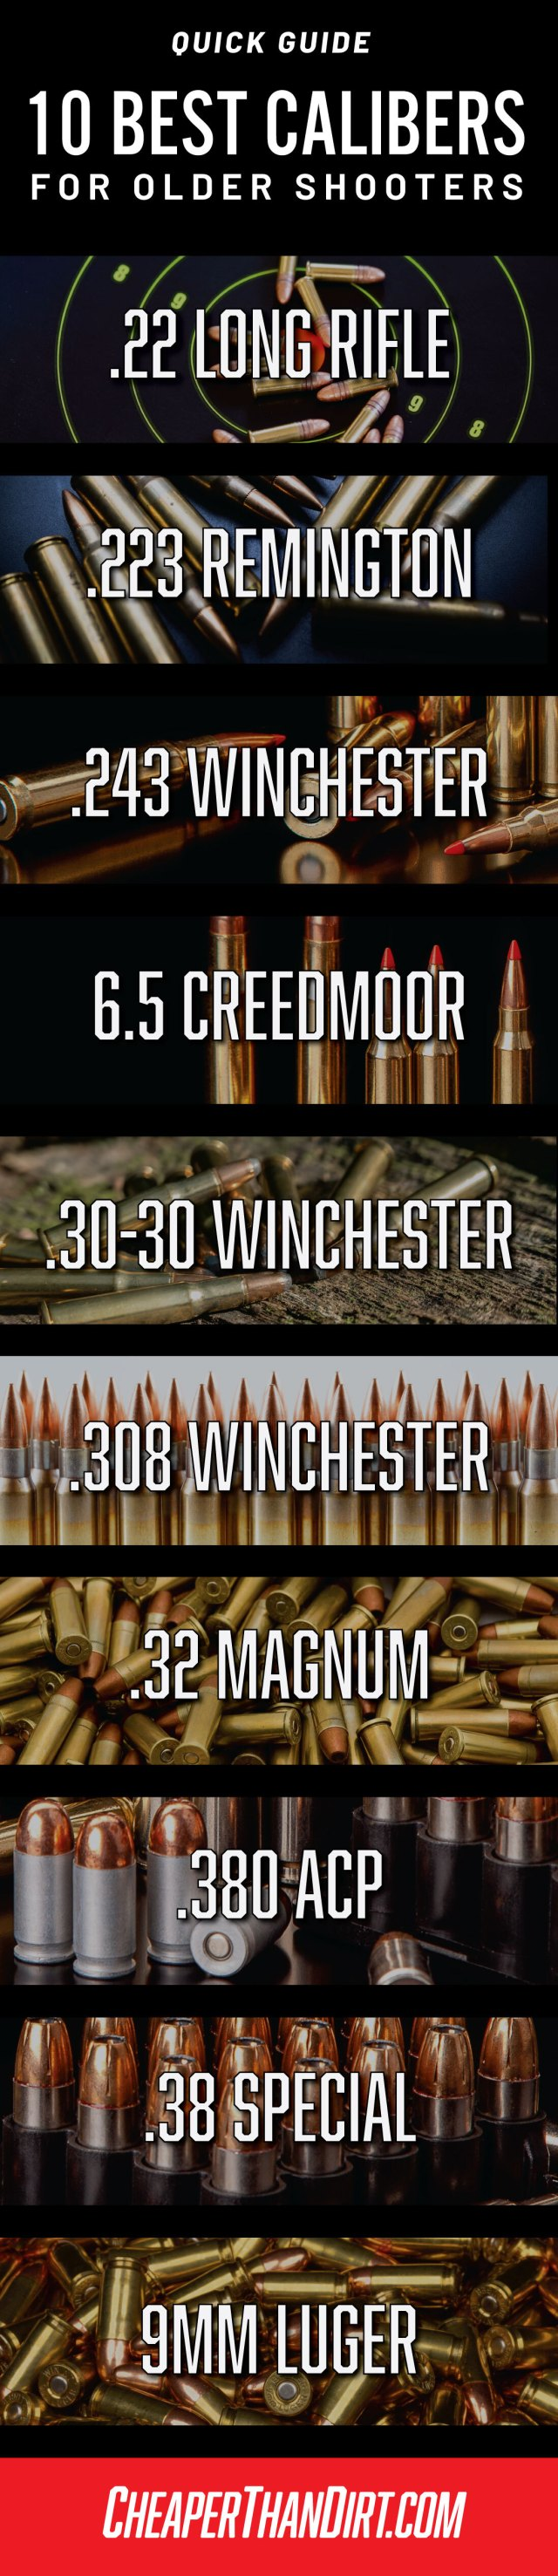 best calibers older shooters